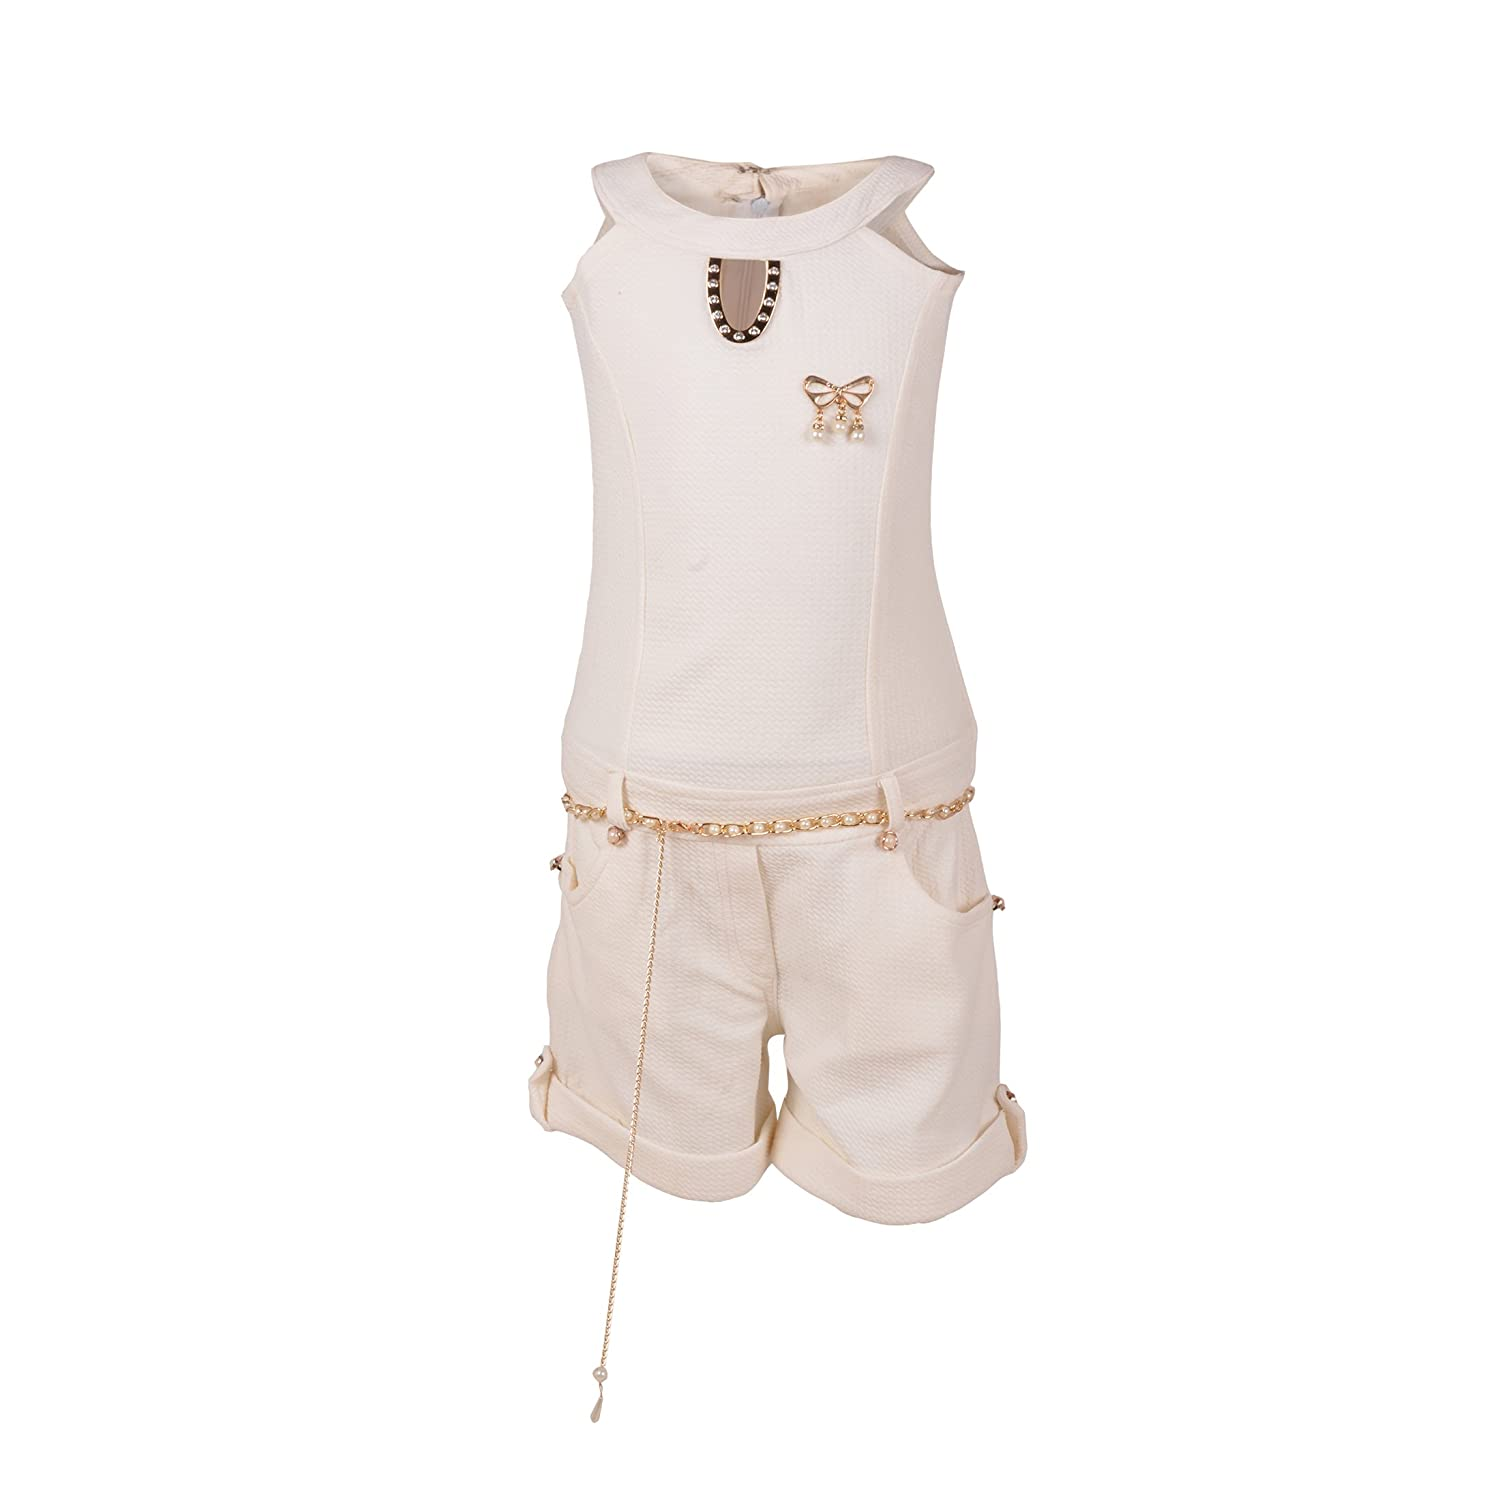 fdffed45545a Aarika Girl s Self Design Premium Party Wear Jumpsuit (JS-5-WHITE 32 9-10  Years)  Amazon.in  Clothing   Accessories